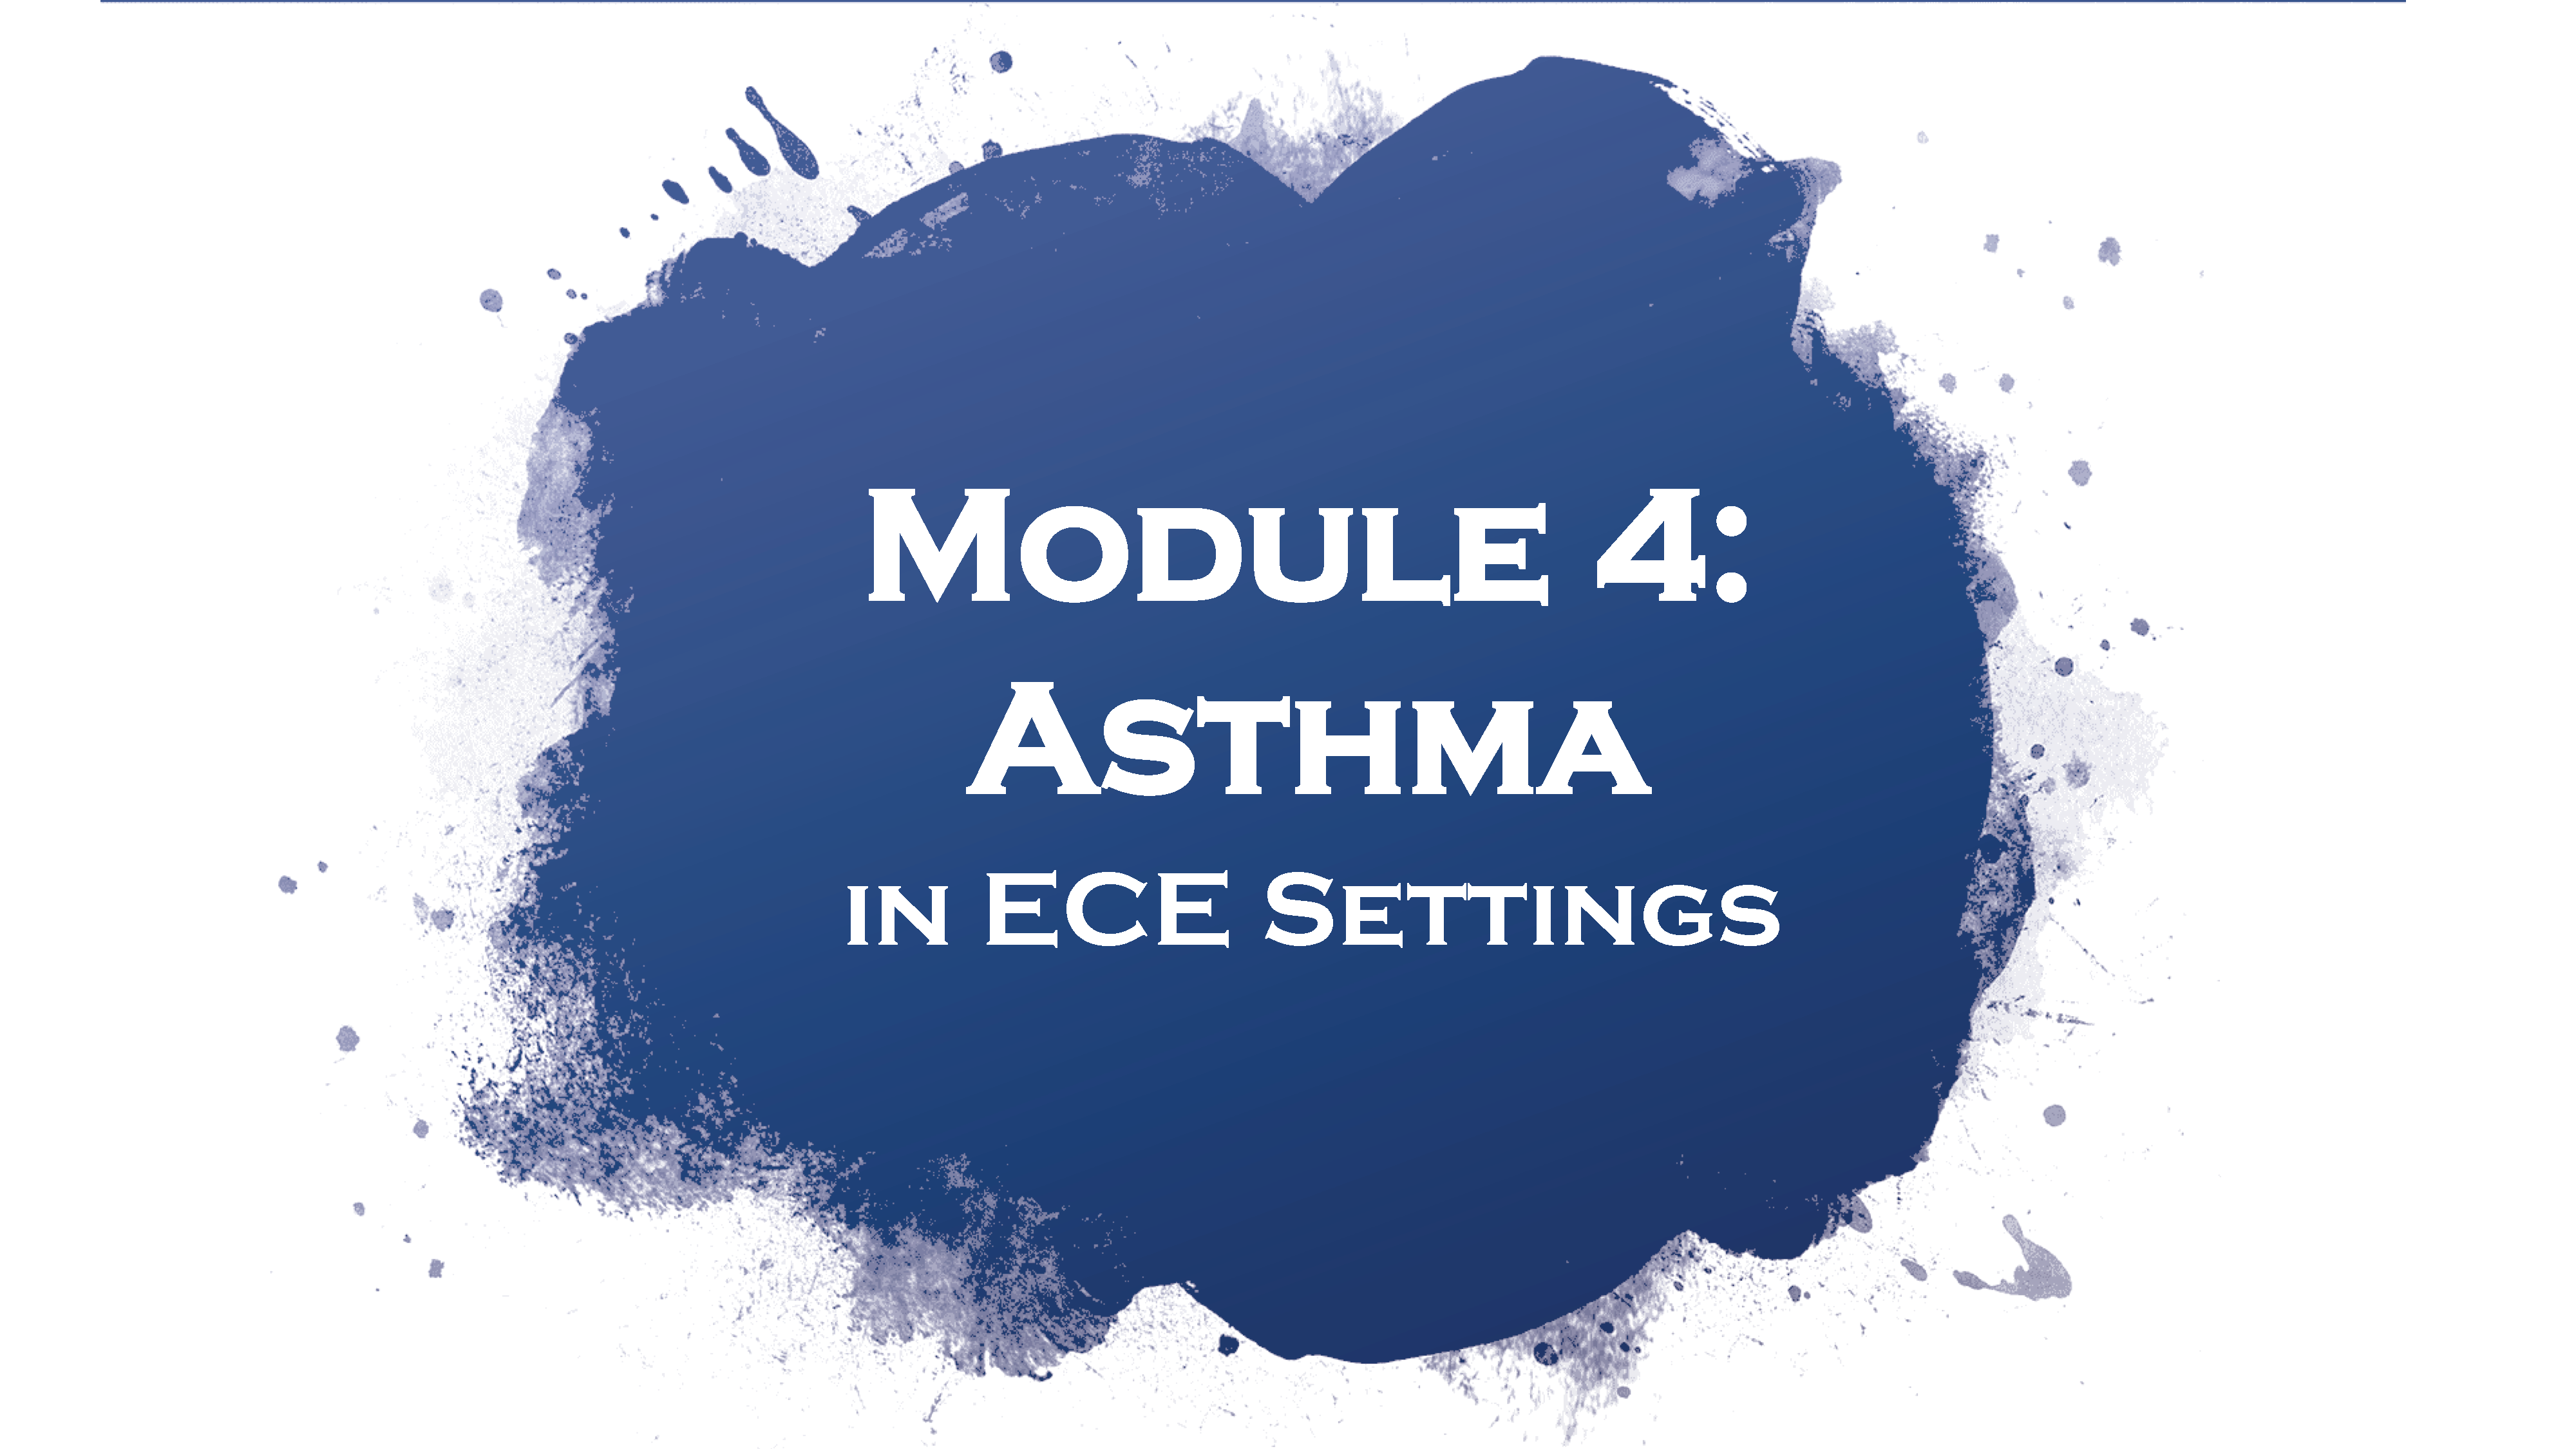 Asthma in ECE Settings cover image